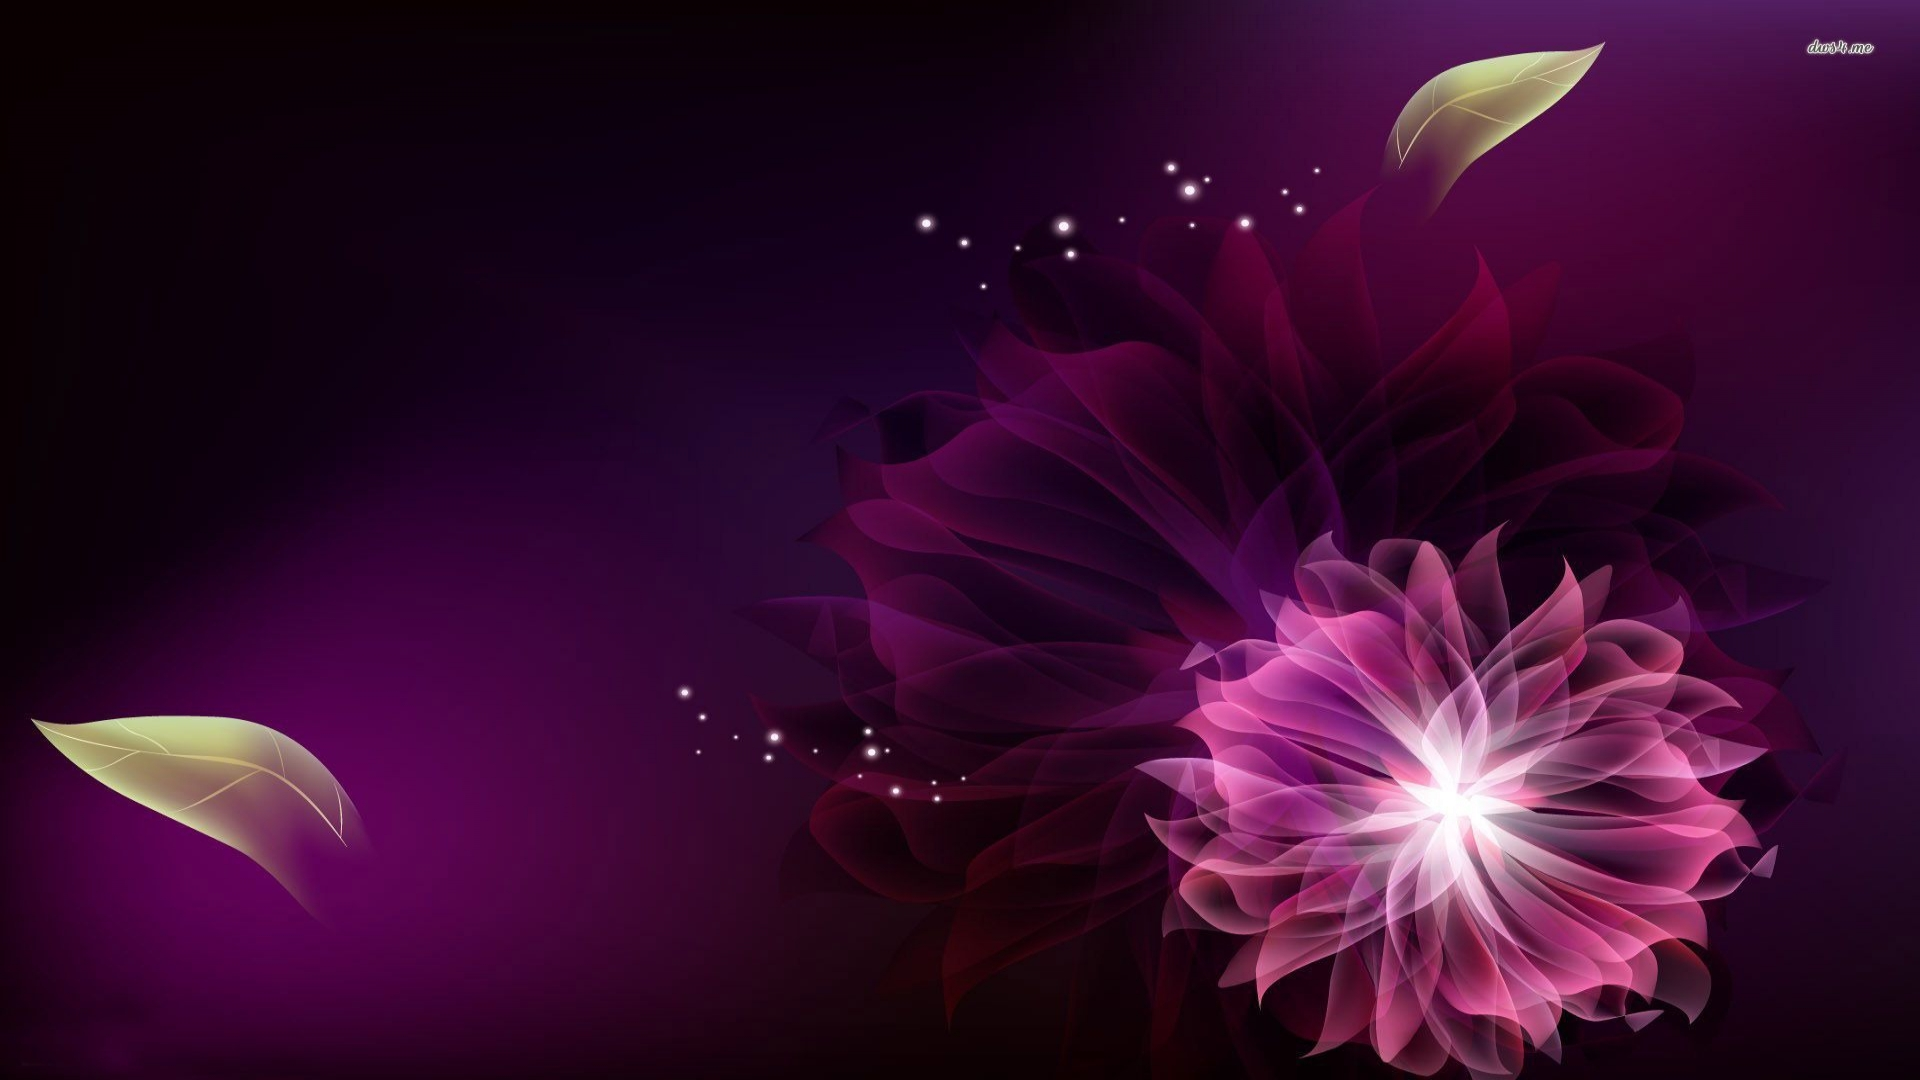 Floral Wallpaper With Black Background Free Hd Wallpaper